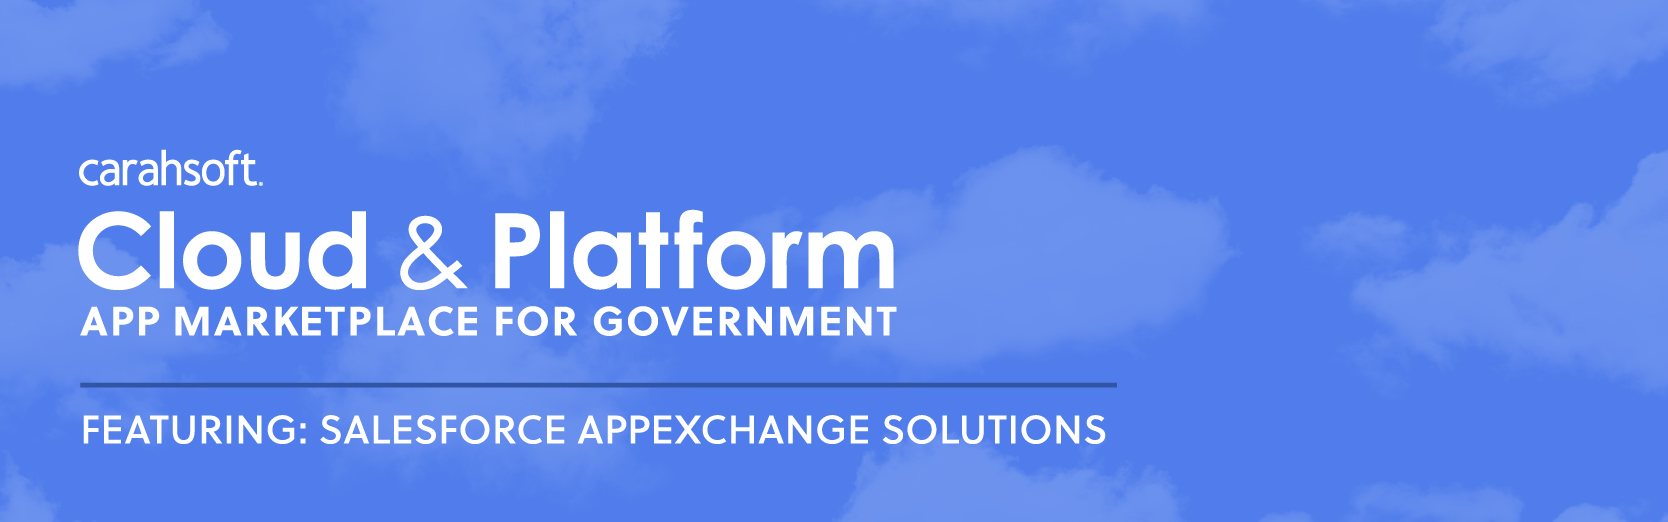 Cloud and Platform App Marketplace Newsletter Banners_C.JPG